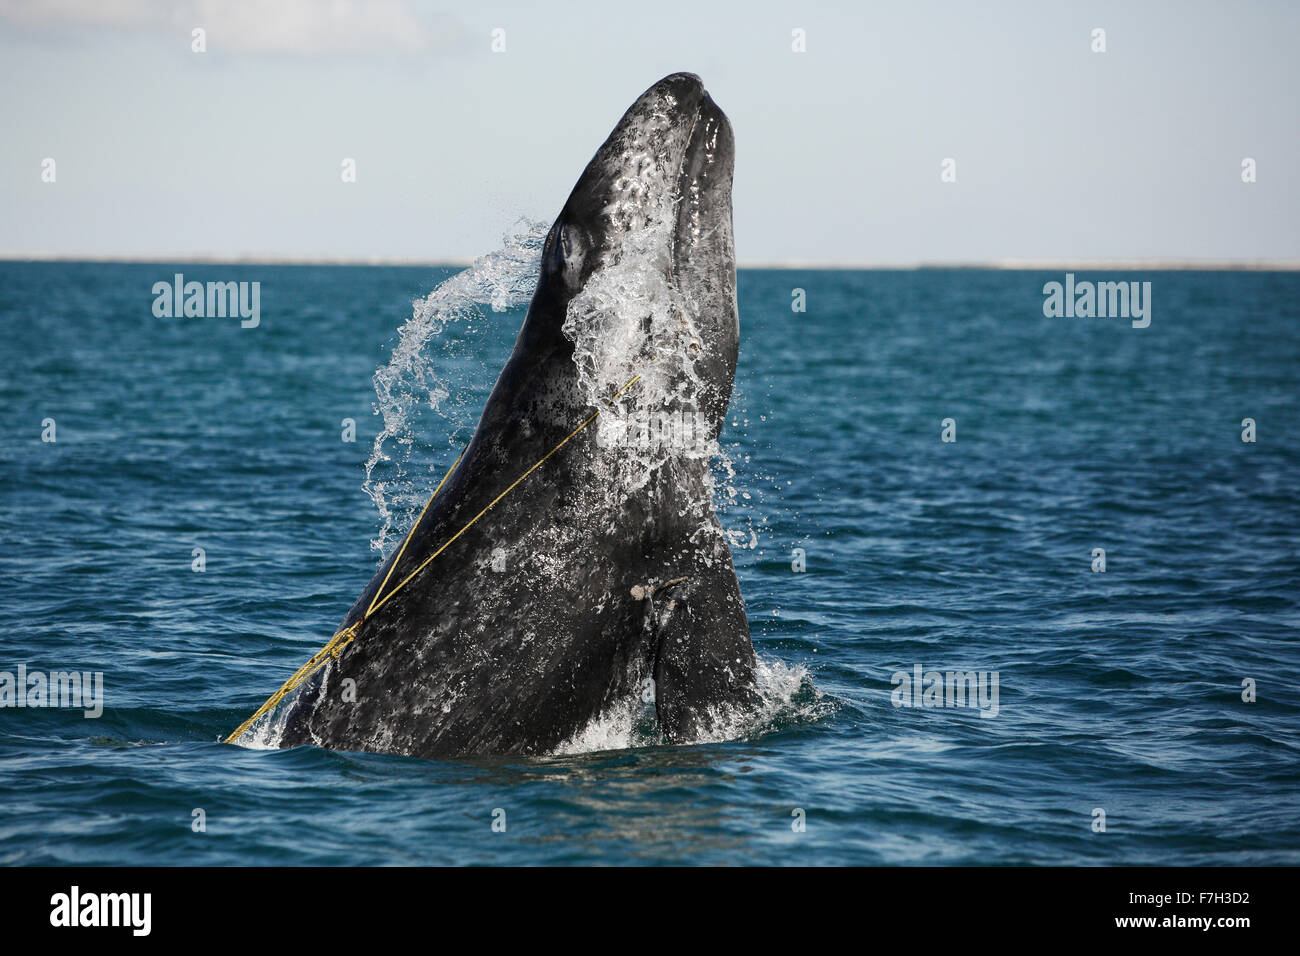 pr5272-D. Gray Whale (Eschrichtius robustus) breaching, juvenile entangled in a lobster trap line. The rope is caught - Stock Image